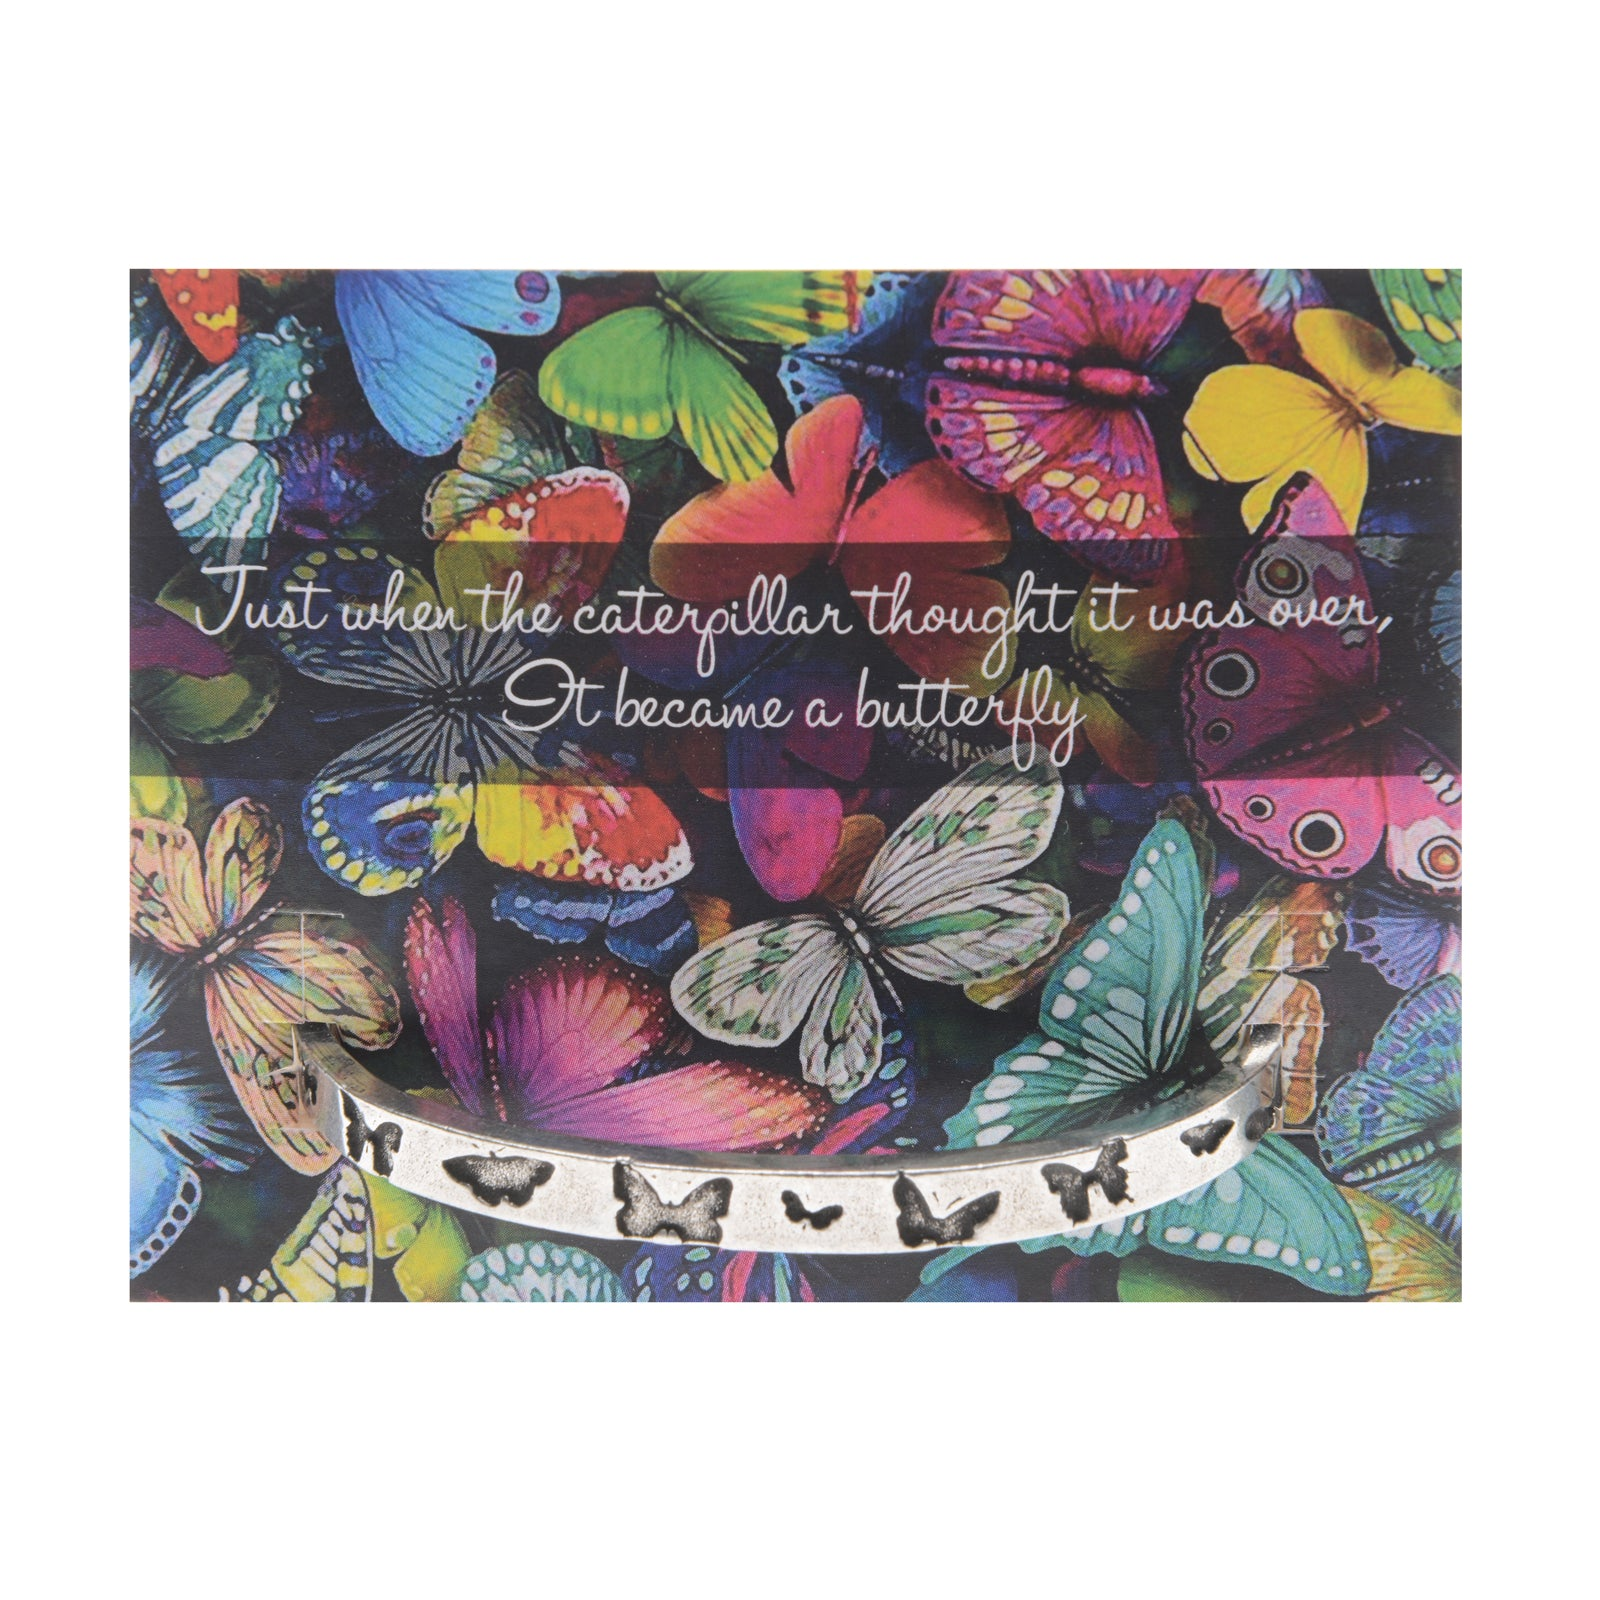 Butterfly Quotable Cuff Bracelet - Whitney Howard Designs